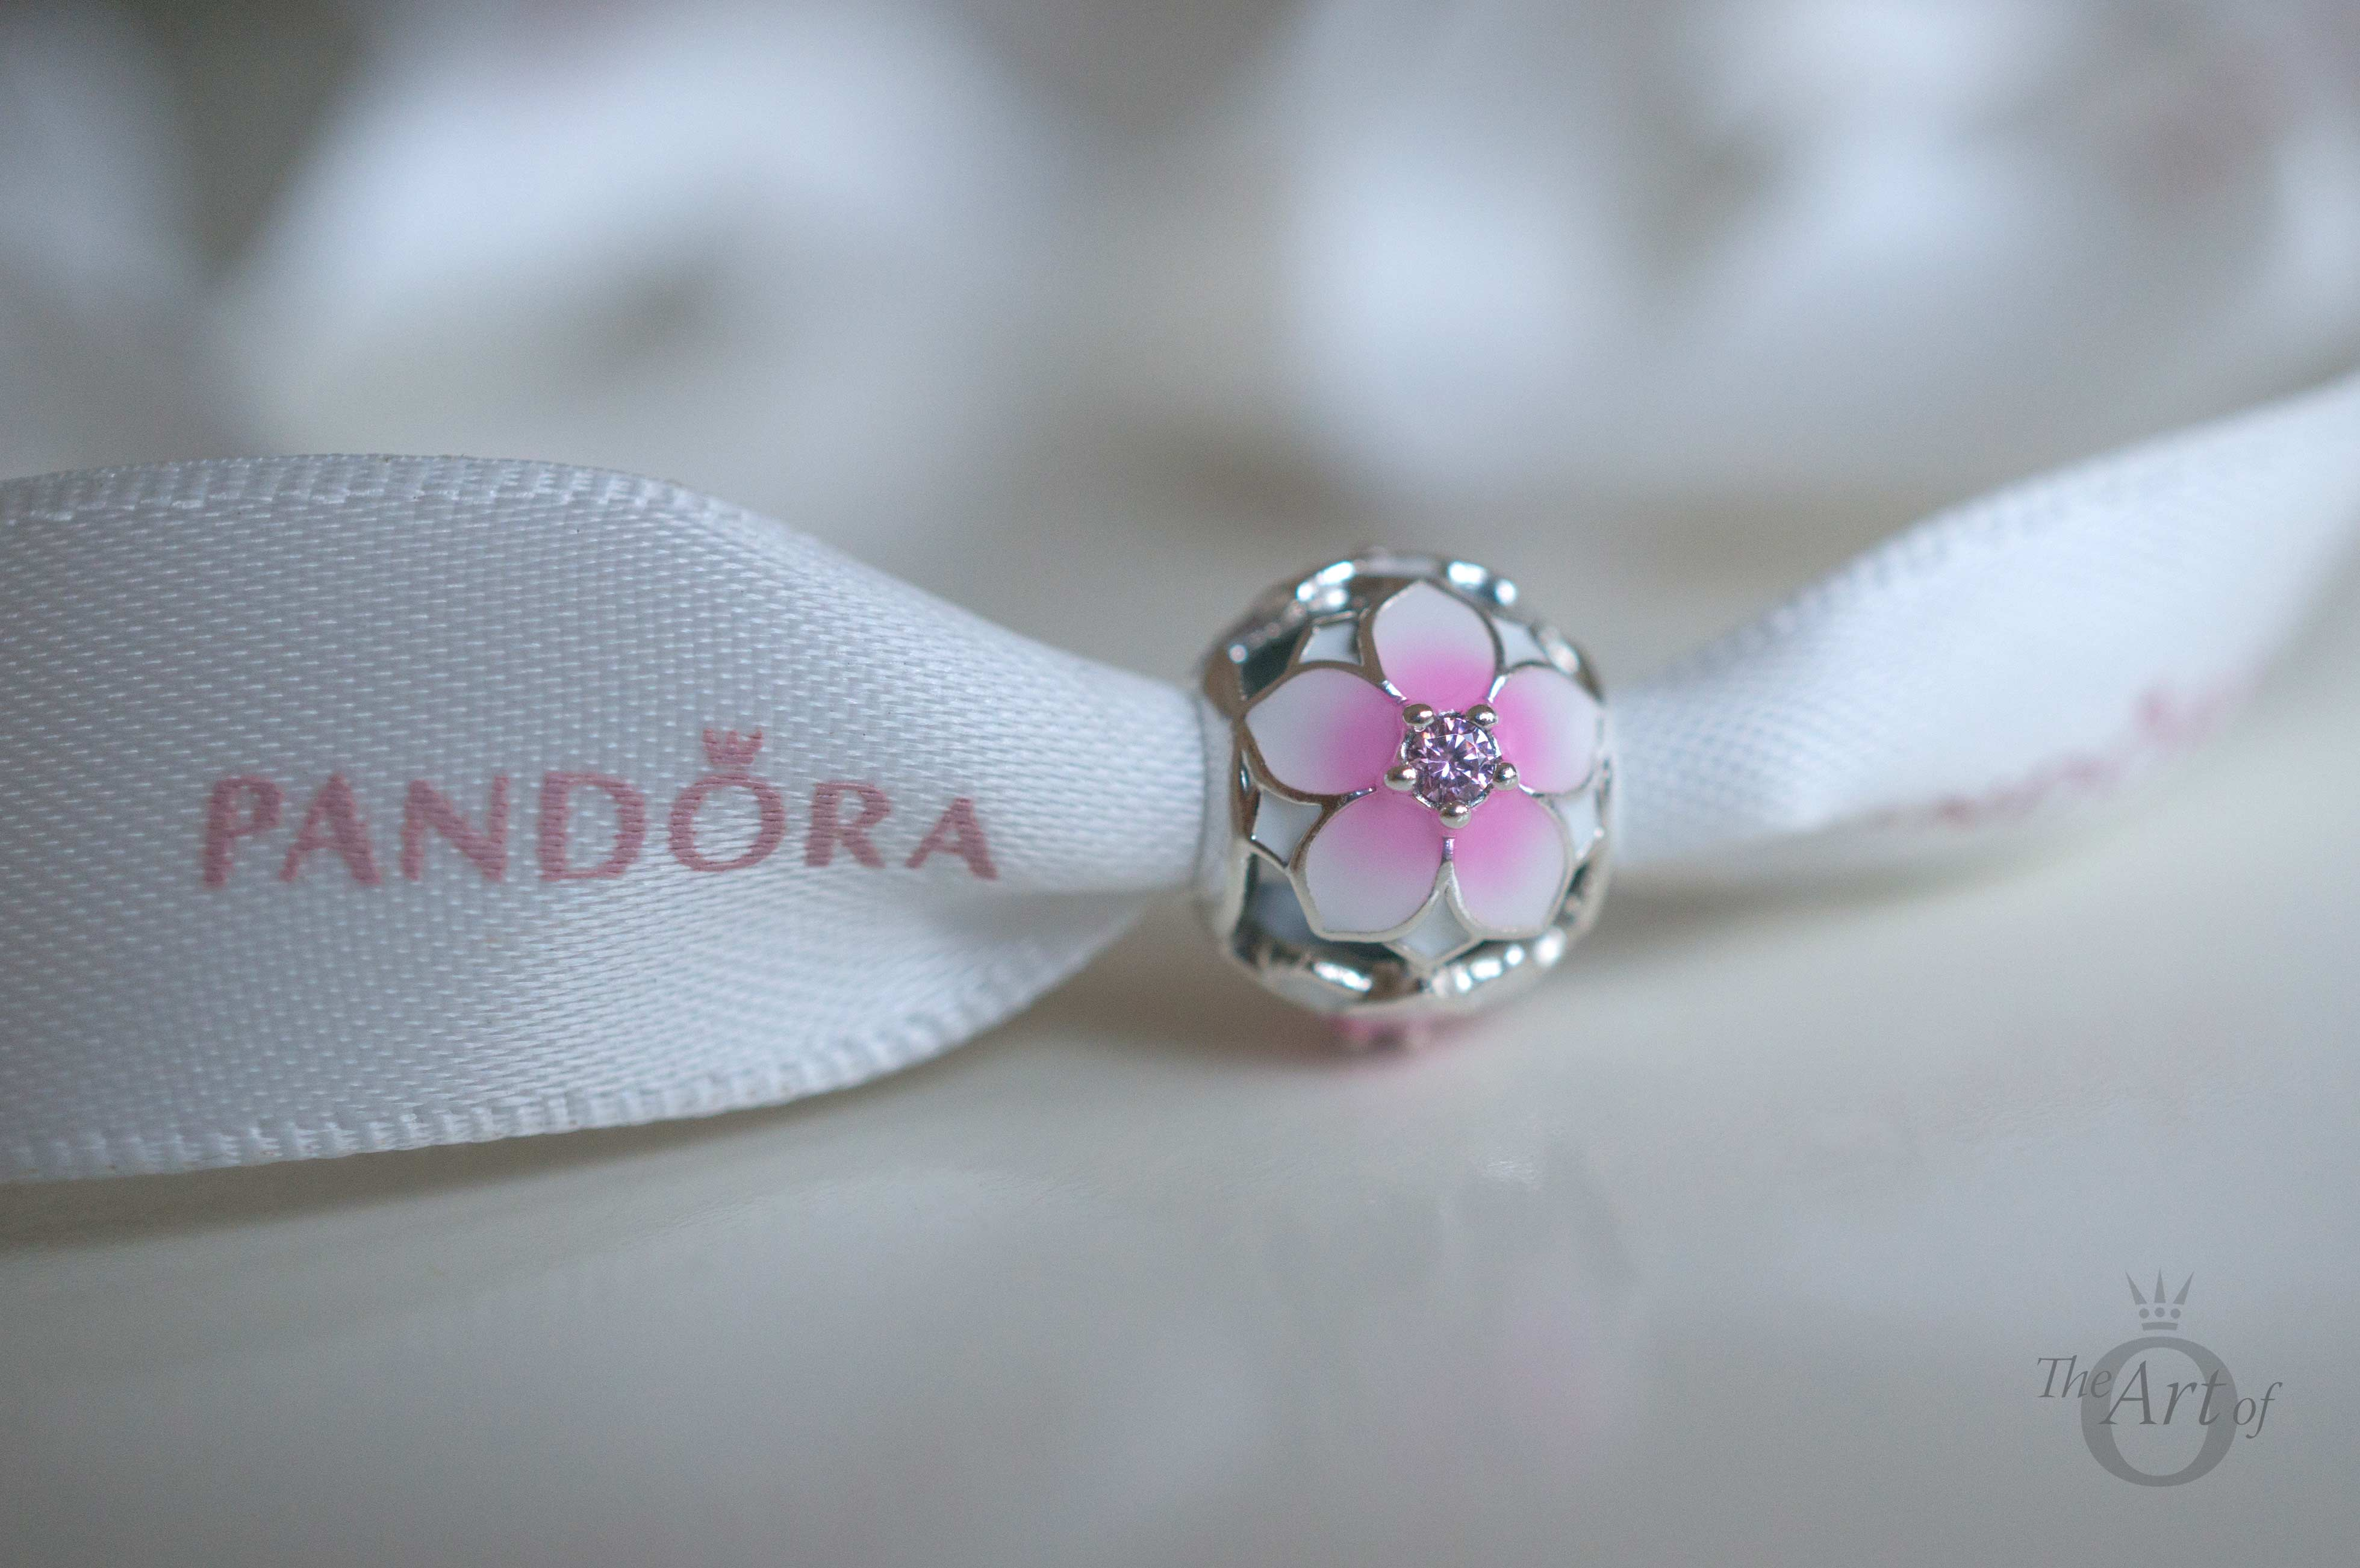 6bddef4ec Pandora-Magnolia-Blooms-792087PCZ-charm-4 - The Art of Pandora ...